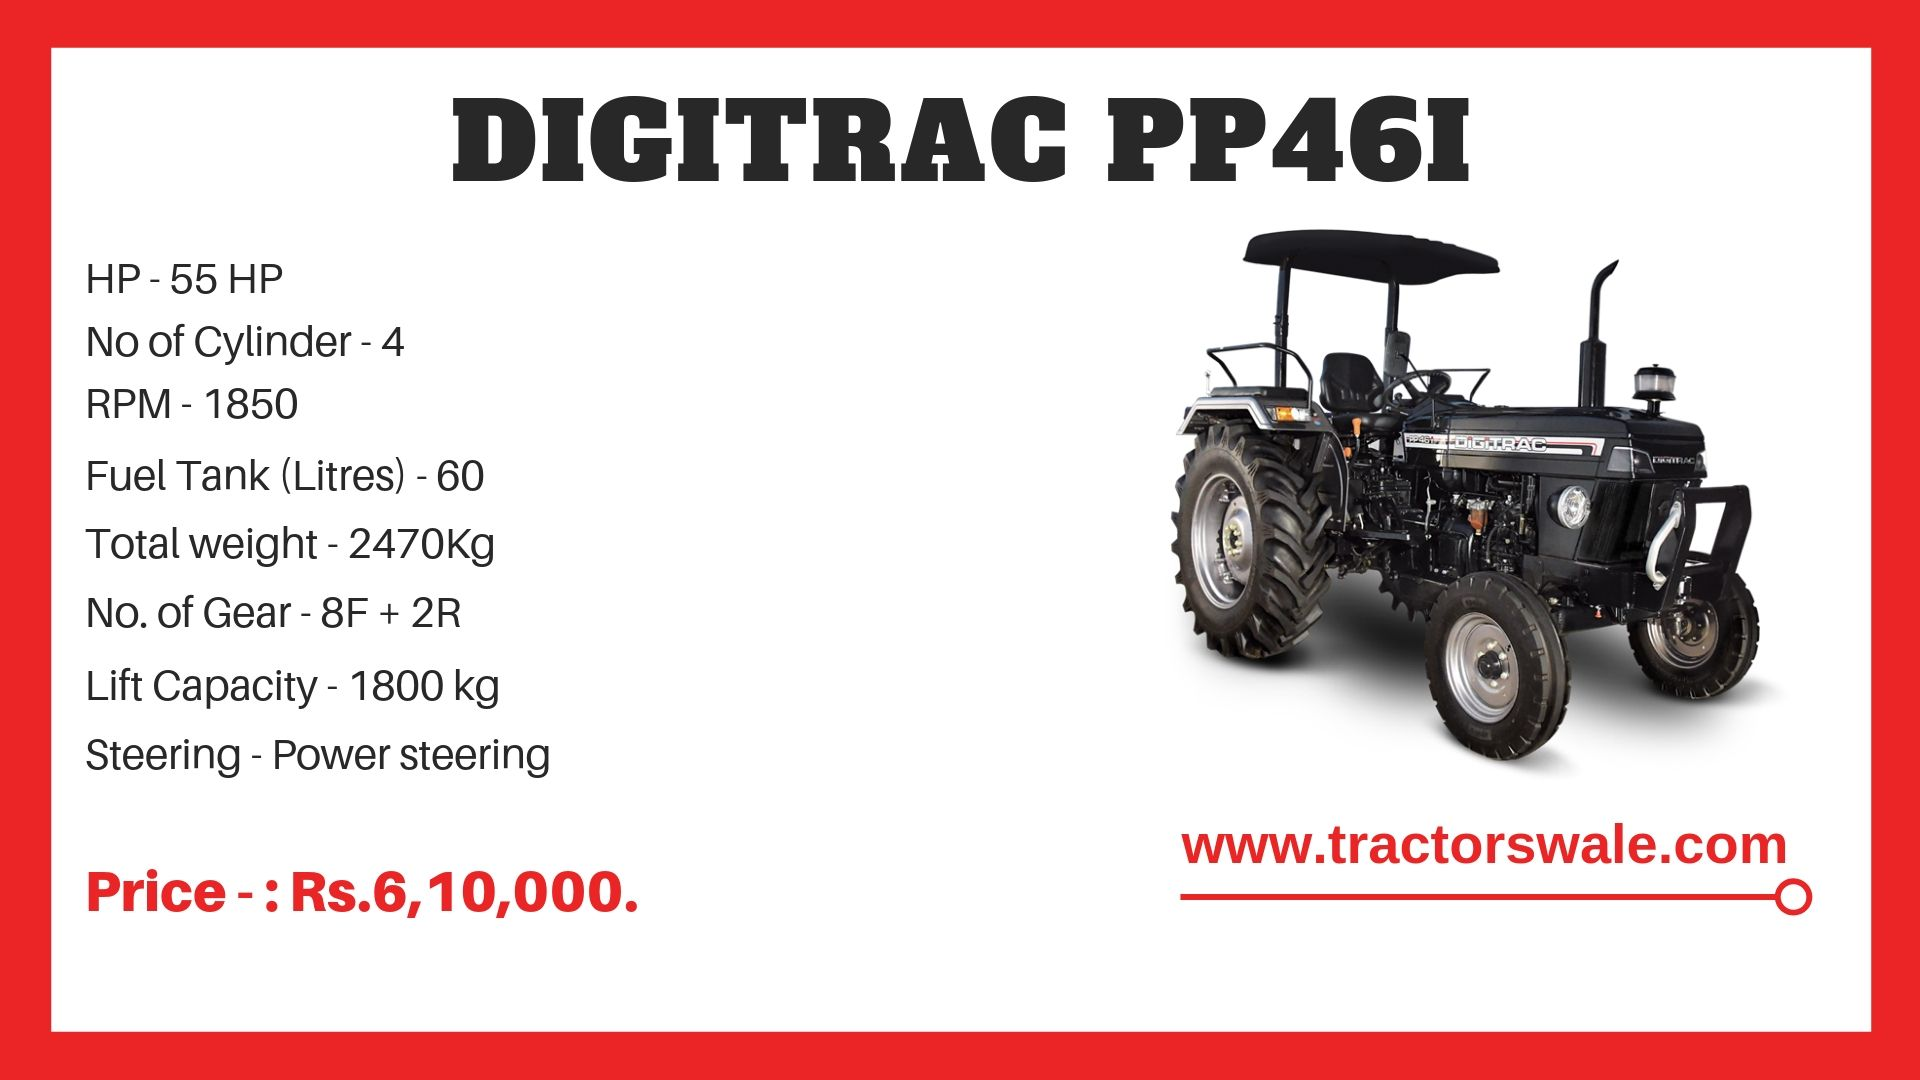 Digitrac PP46i Tractor Specifications